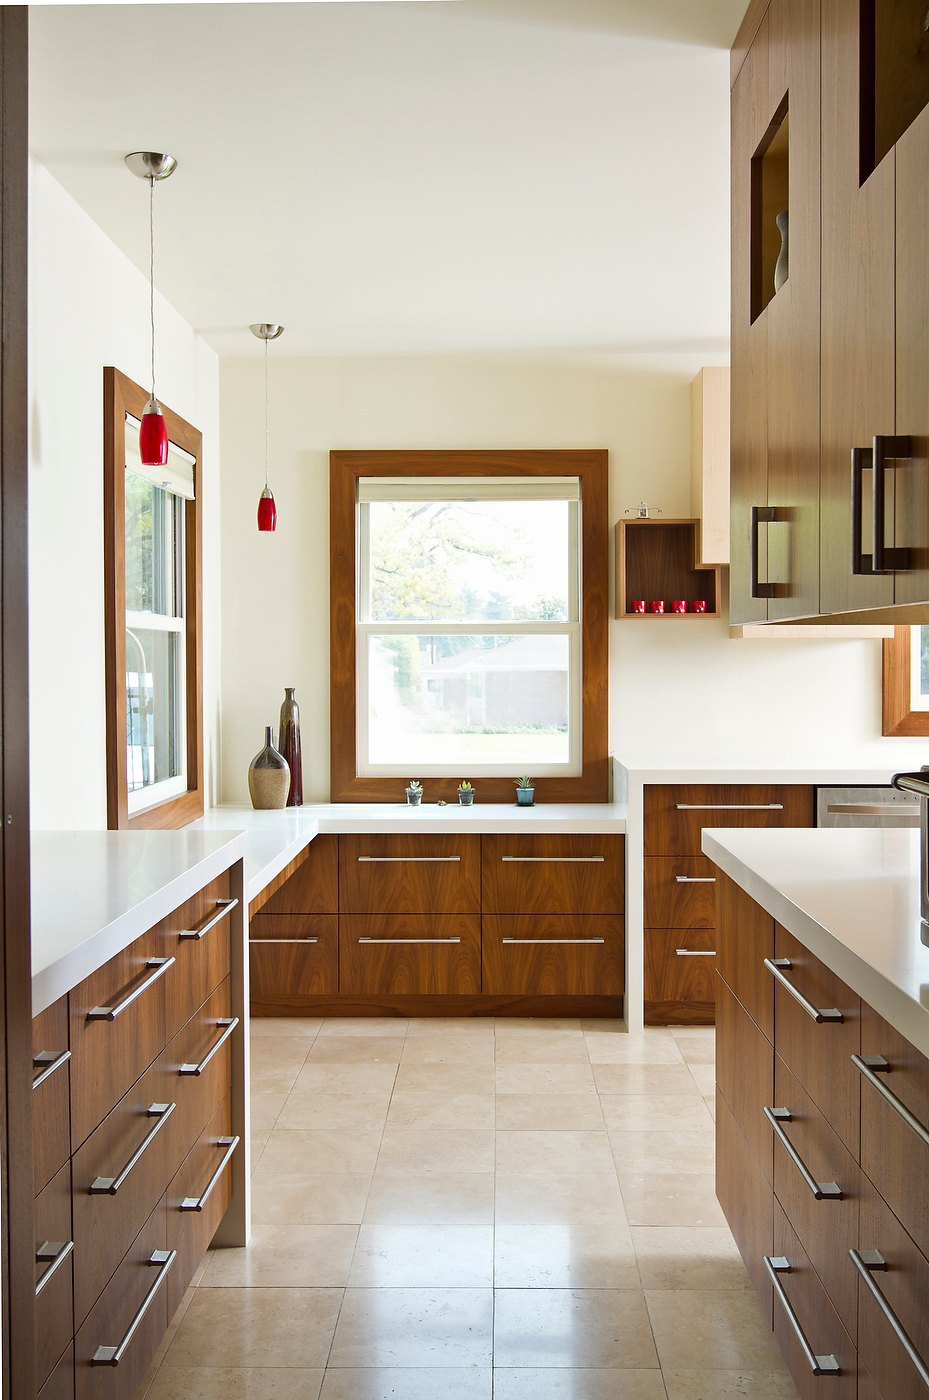 kitchen-eaton-residence-04.jpg